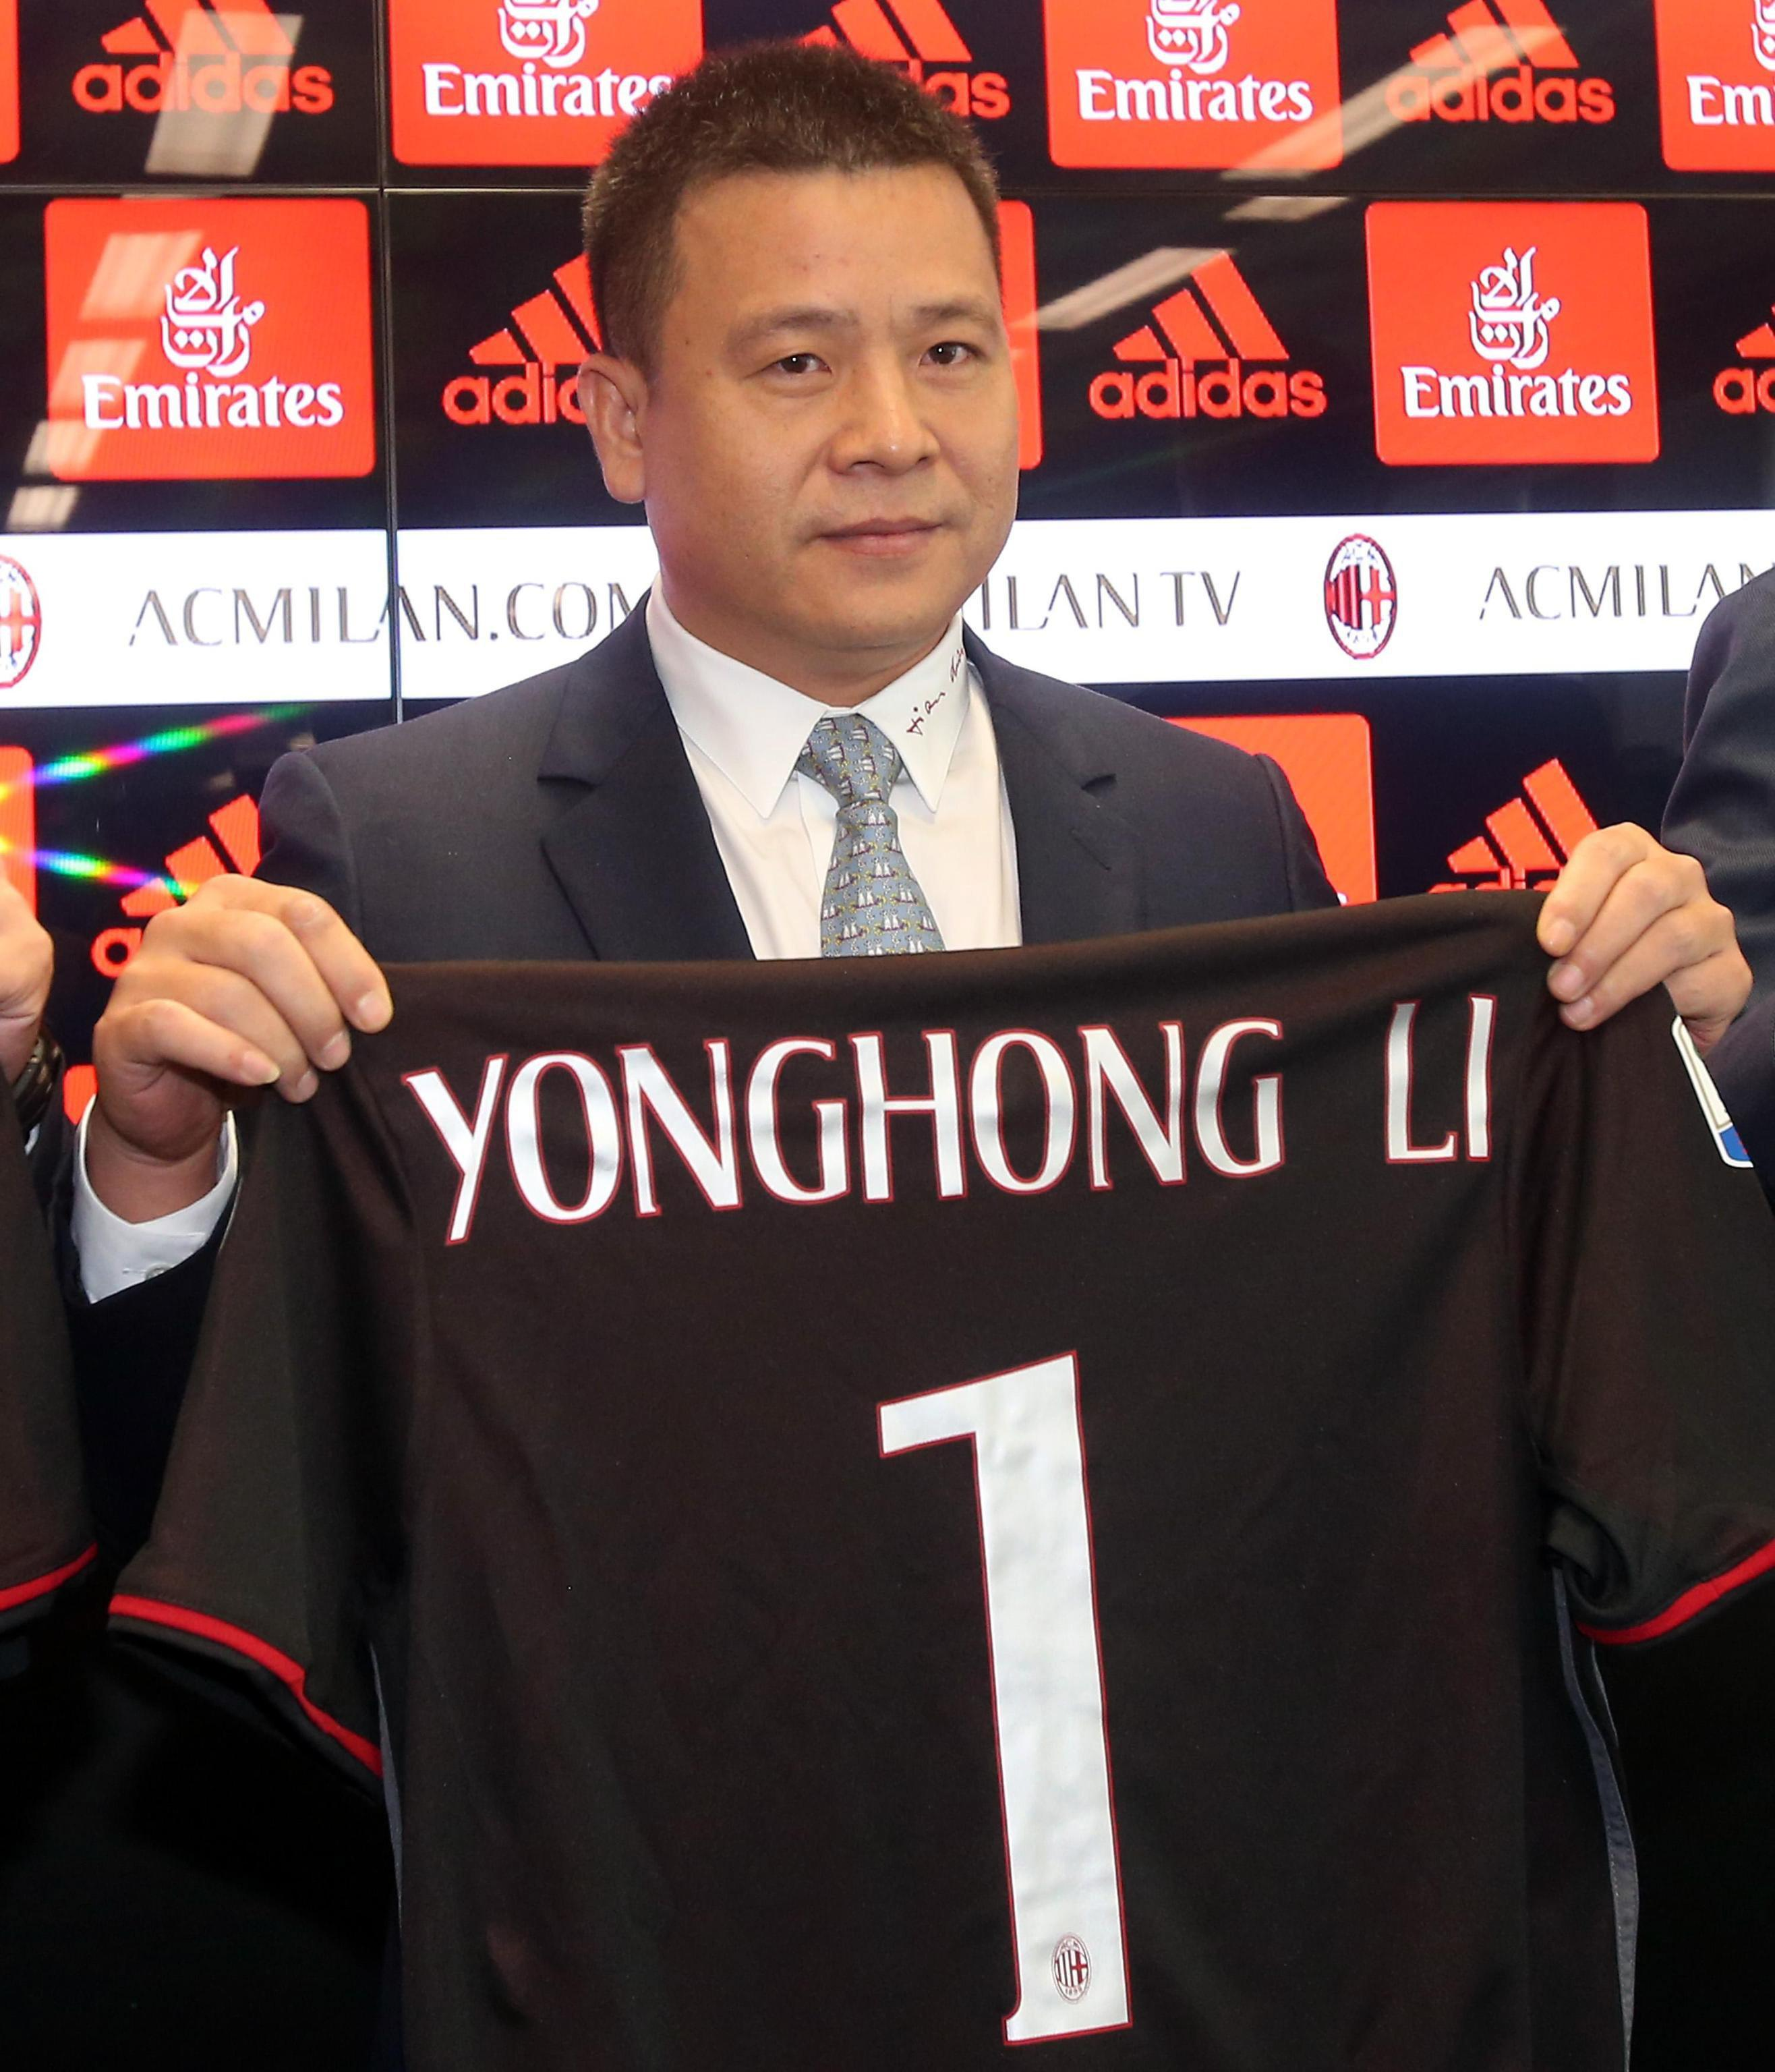 Li Yonghong was installed as AC Milan's new chairman last year, bringing an influx in signings